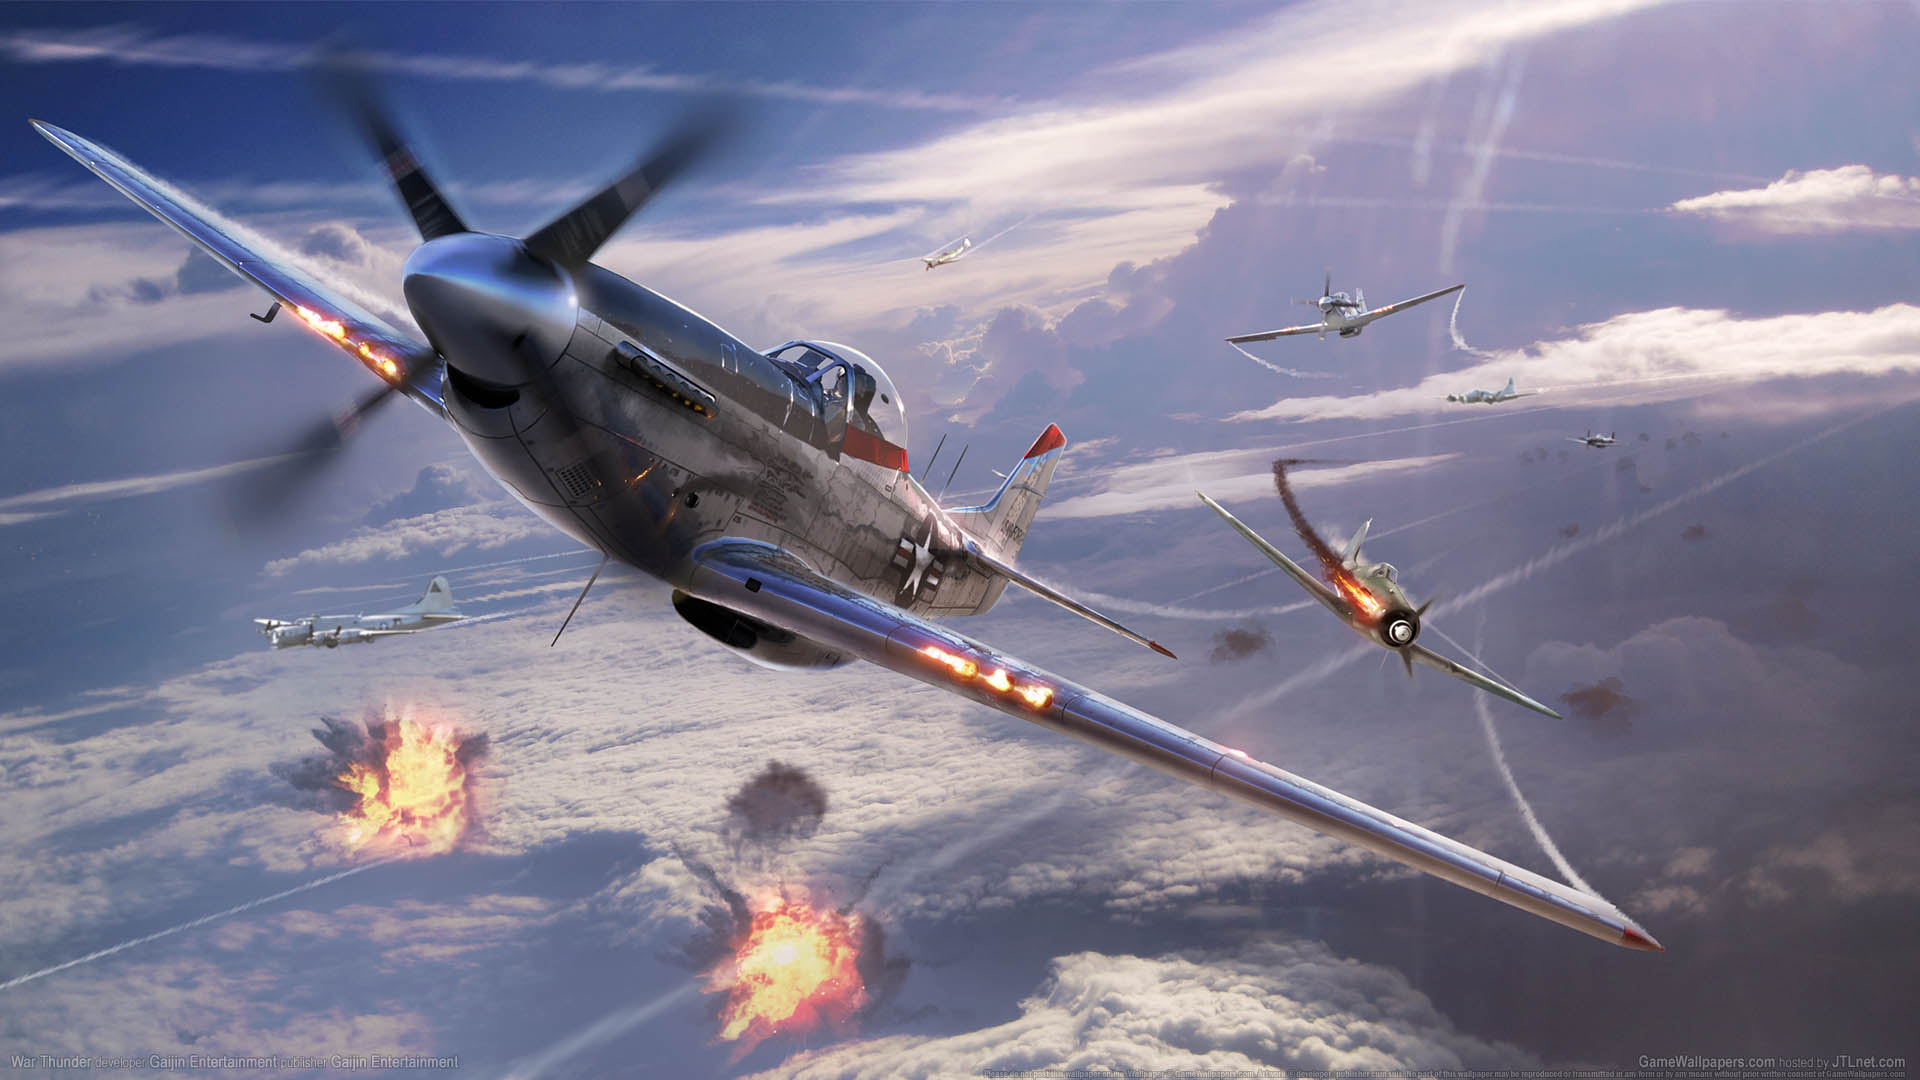 War Thunder wallpaper 01 1920x1080